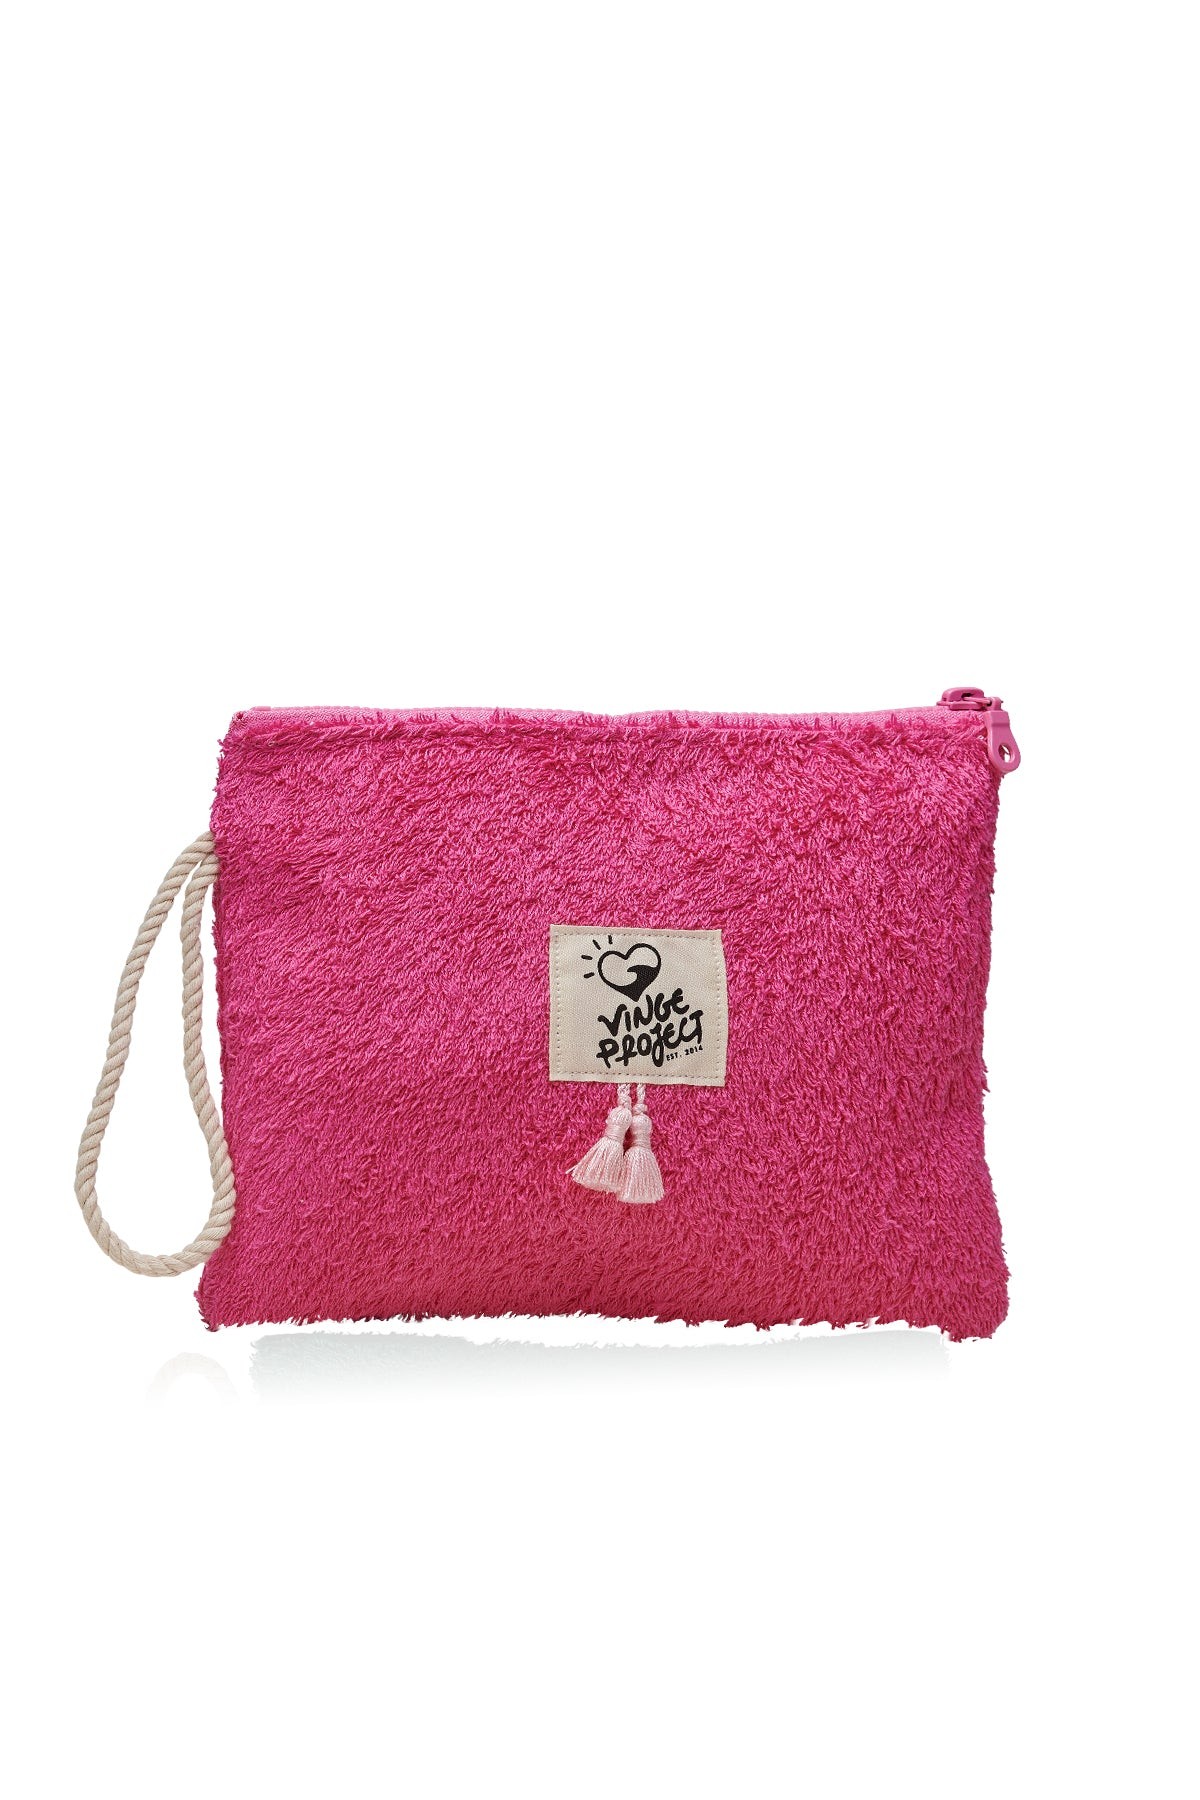 Magnolia 𝐒𝐦𝐚𝐥𝐥 Waterproof Clutch Bag